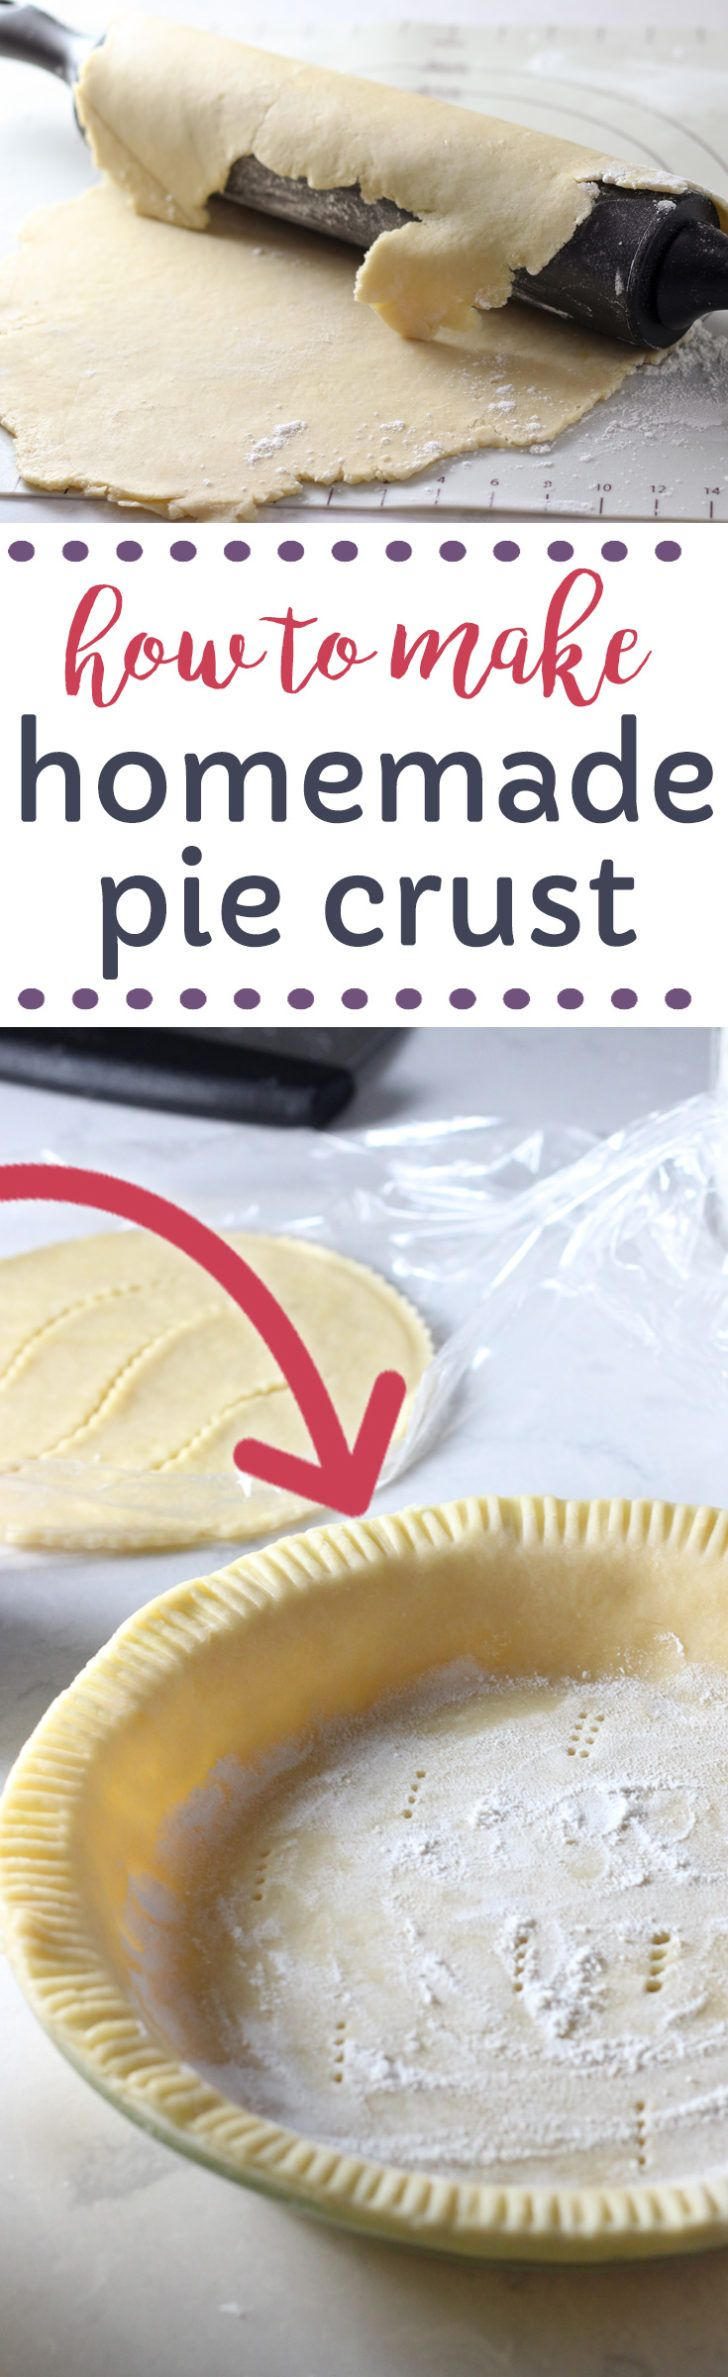 The Best Homemade Pie Crust Recipe! Made with Crisco shortening, vinegar, eggs, flour and salt. This is my grandma's recipe and it's been handed down which means it is so easy to make with my step by step tutorial.  This homemade recipe will insure you never buy store-bought again!